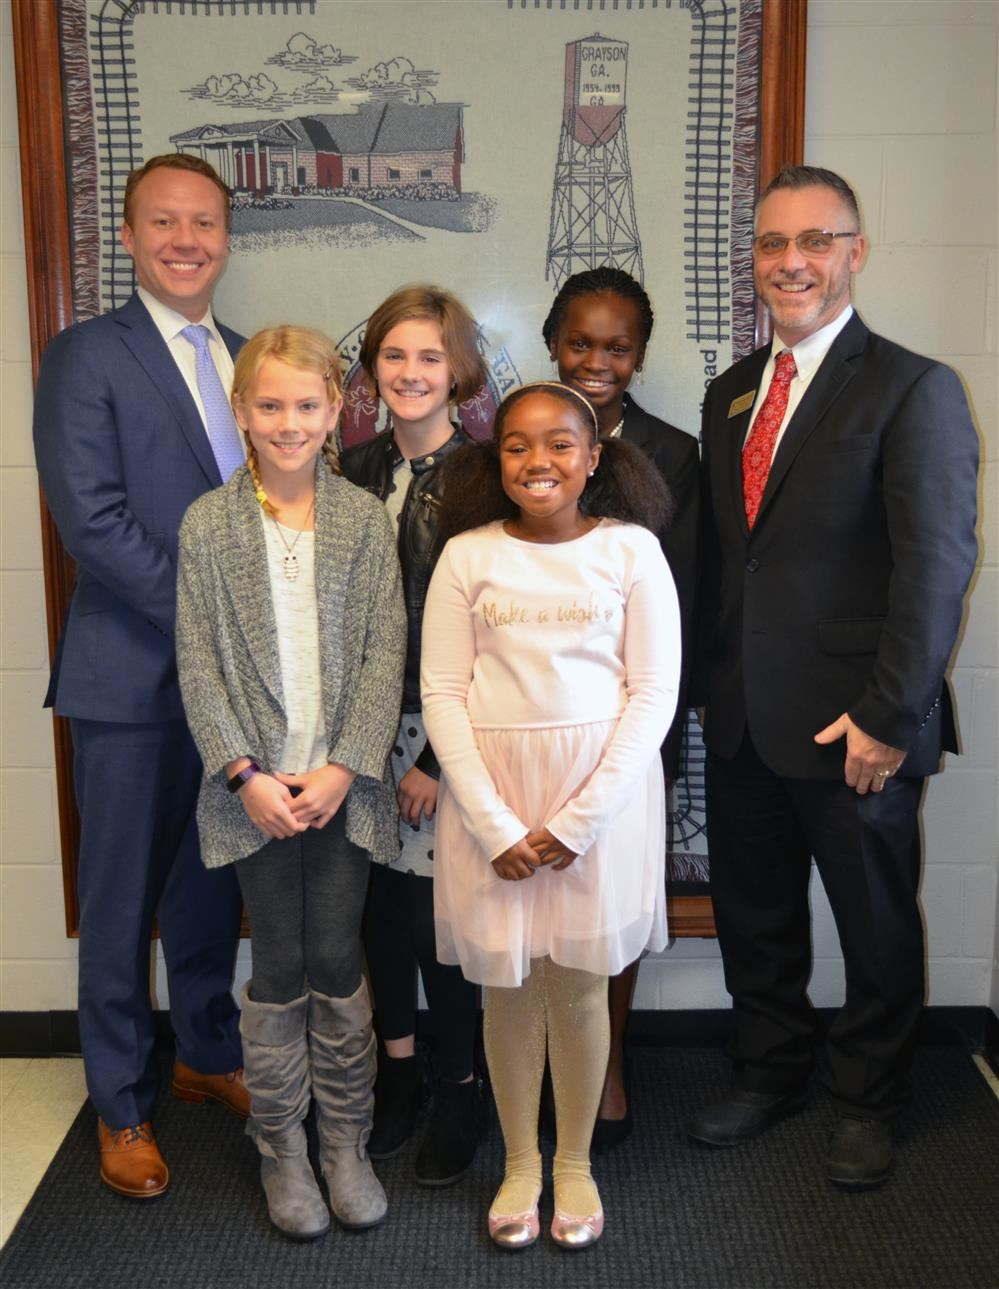 Mr. Lockhart , Eastside Medical Center Chief Operating Officer, visits GES as Principal for the Day